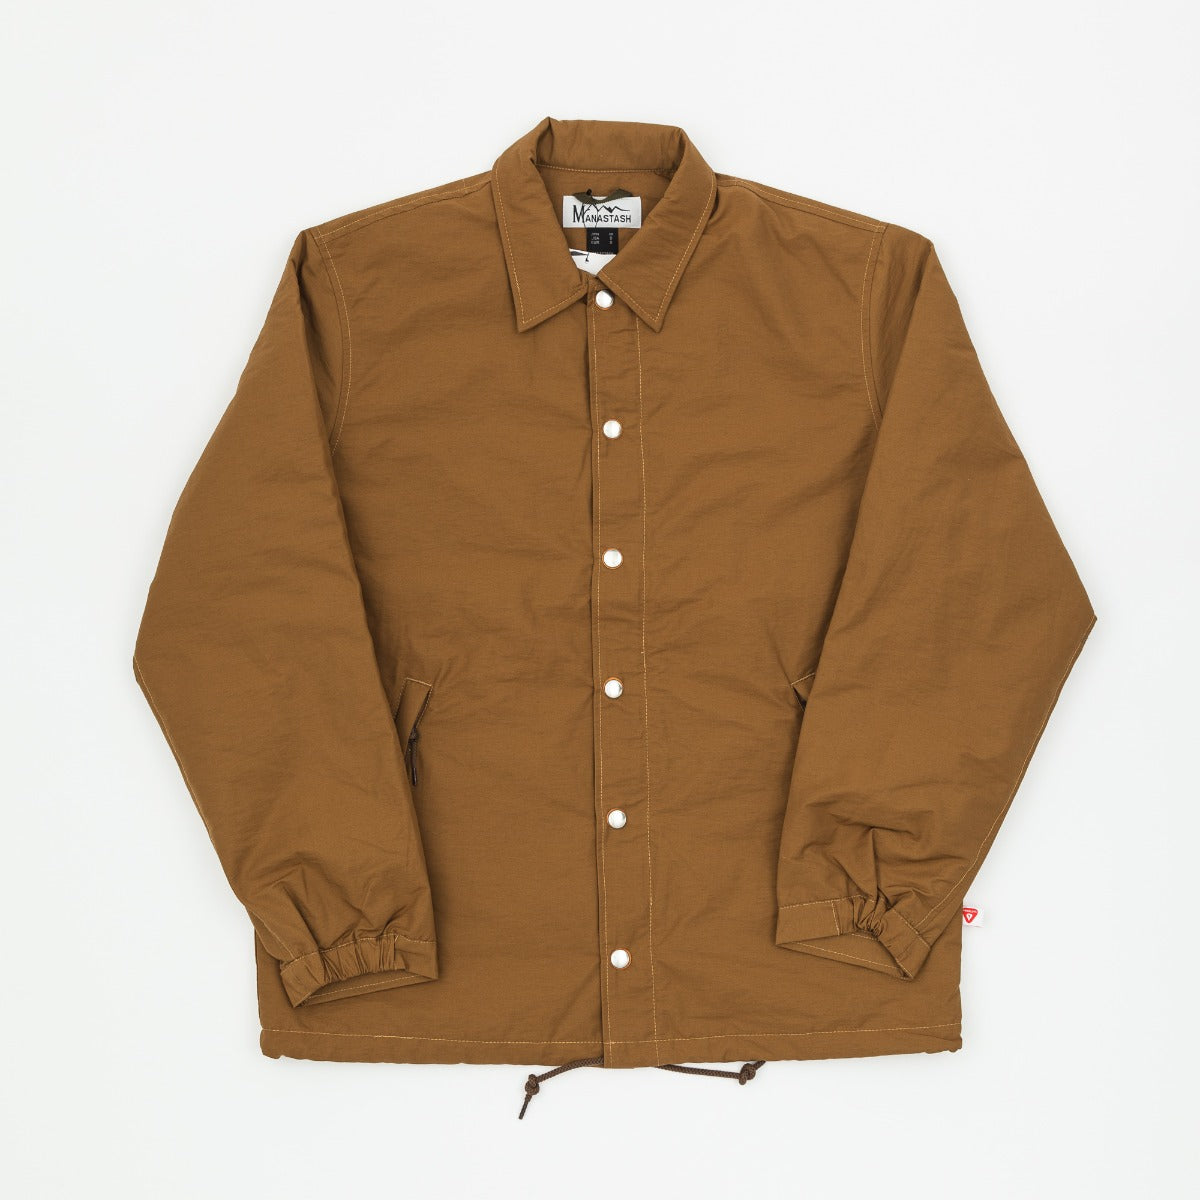 Manastash P-60 Mountain Coach Jacket